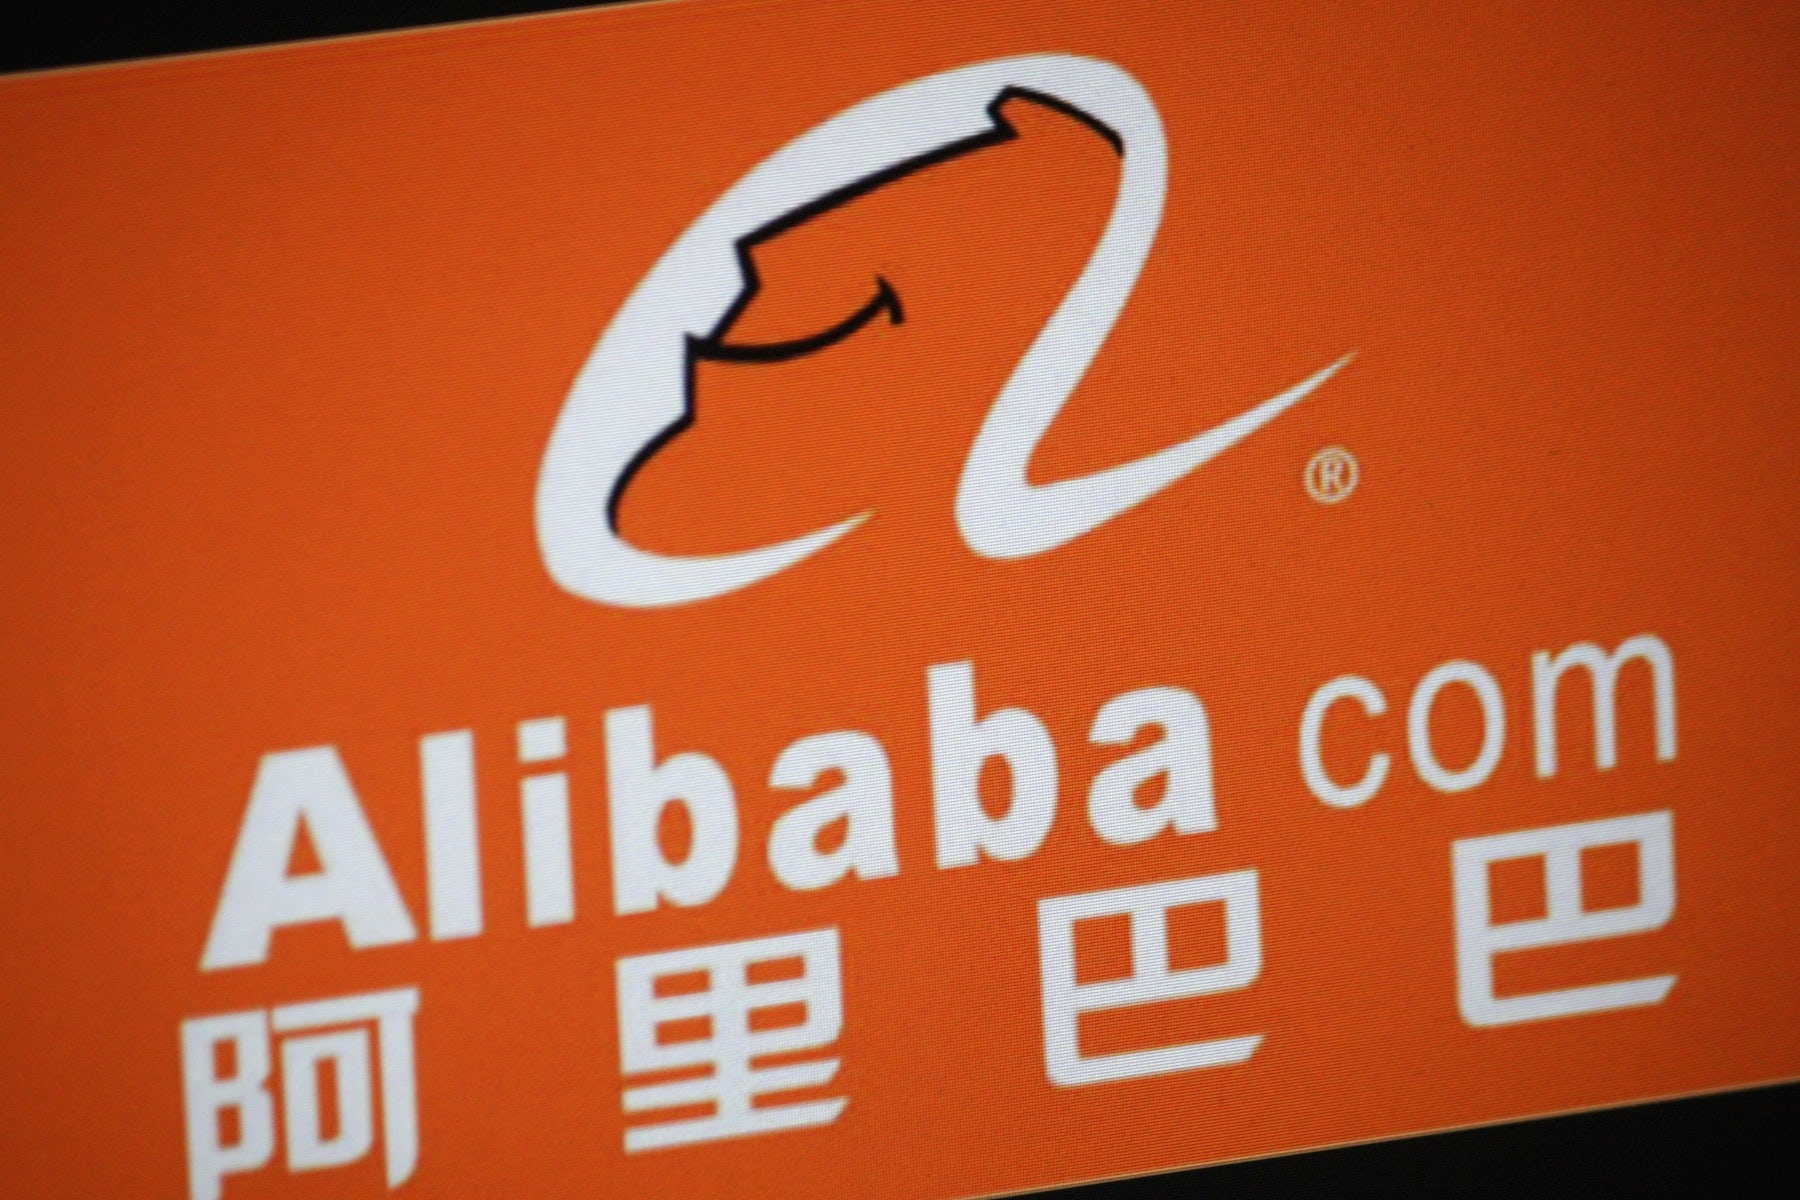 Billionaire Ma Warns Alibaba Faces Its 'Most Dangerous' Moment